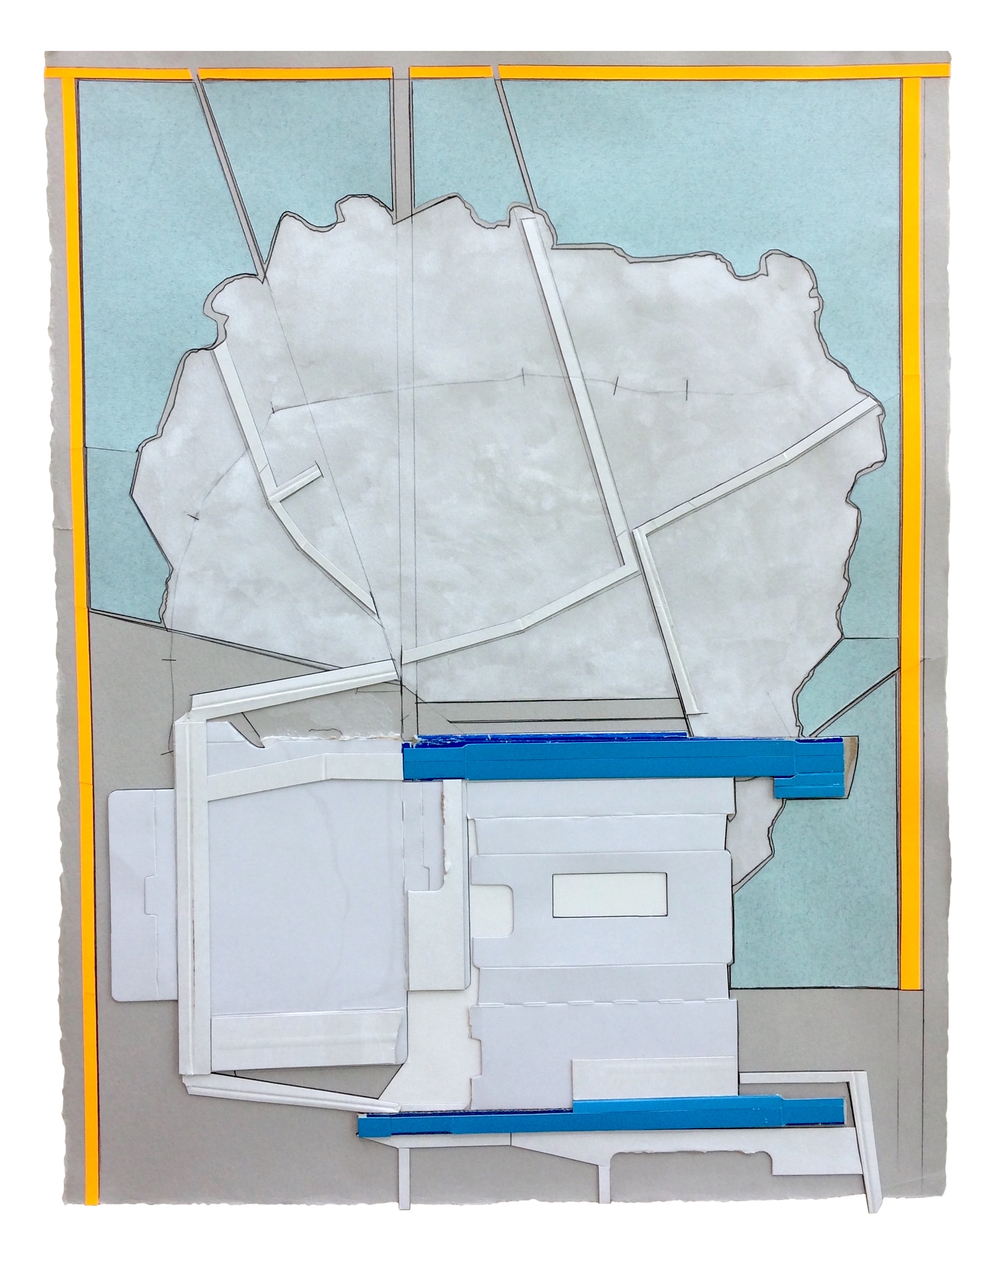 Marker , 2016  Collage, gouache, pencil on paper  25 x 19 1/4 inches